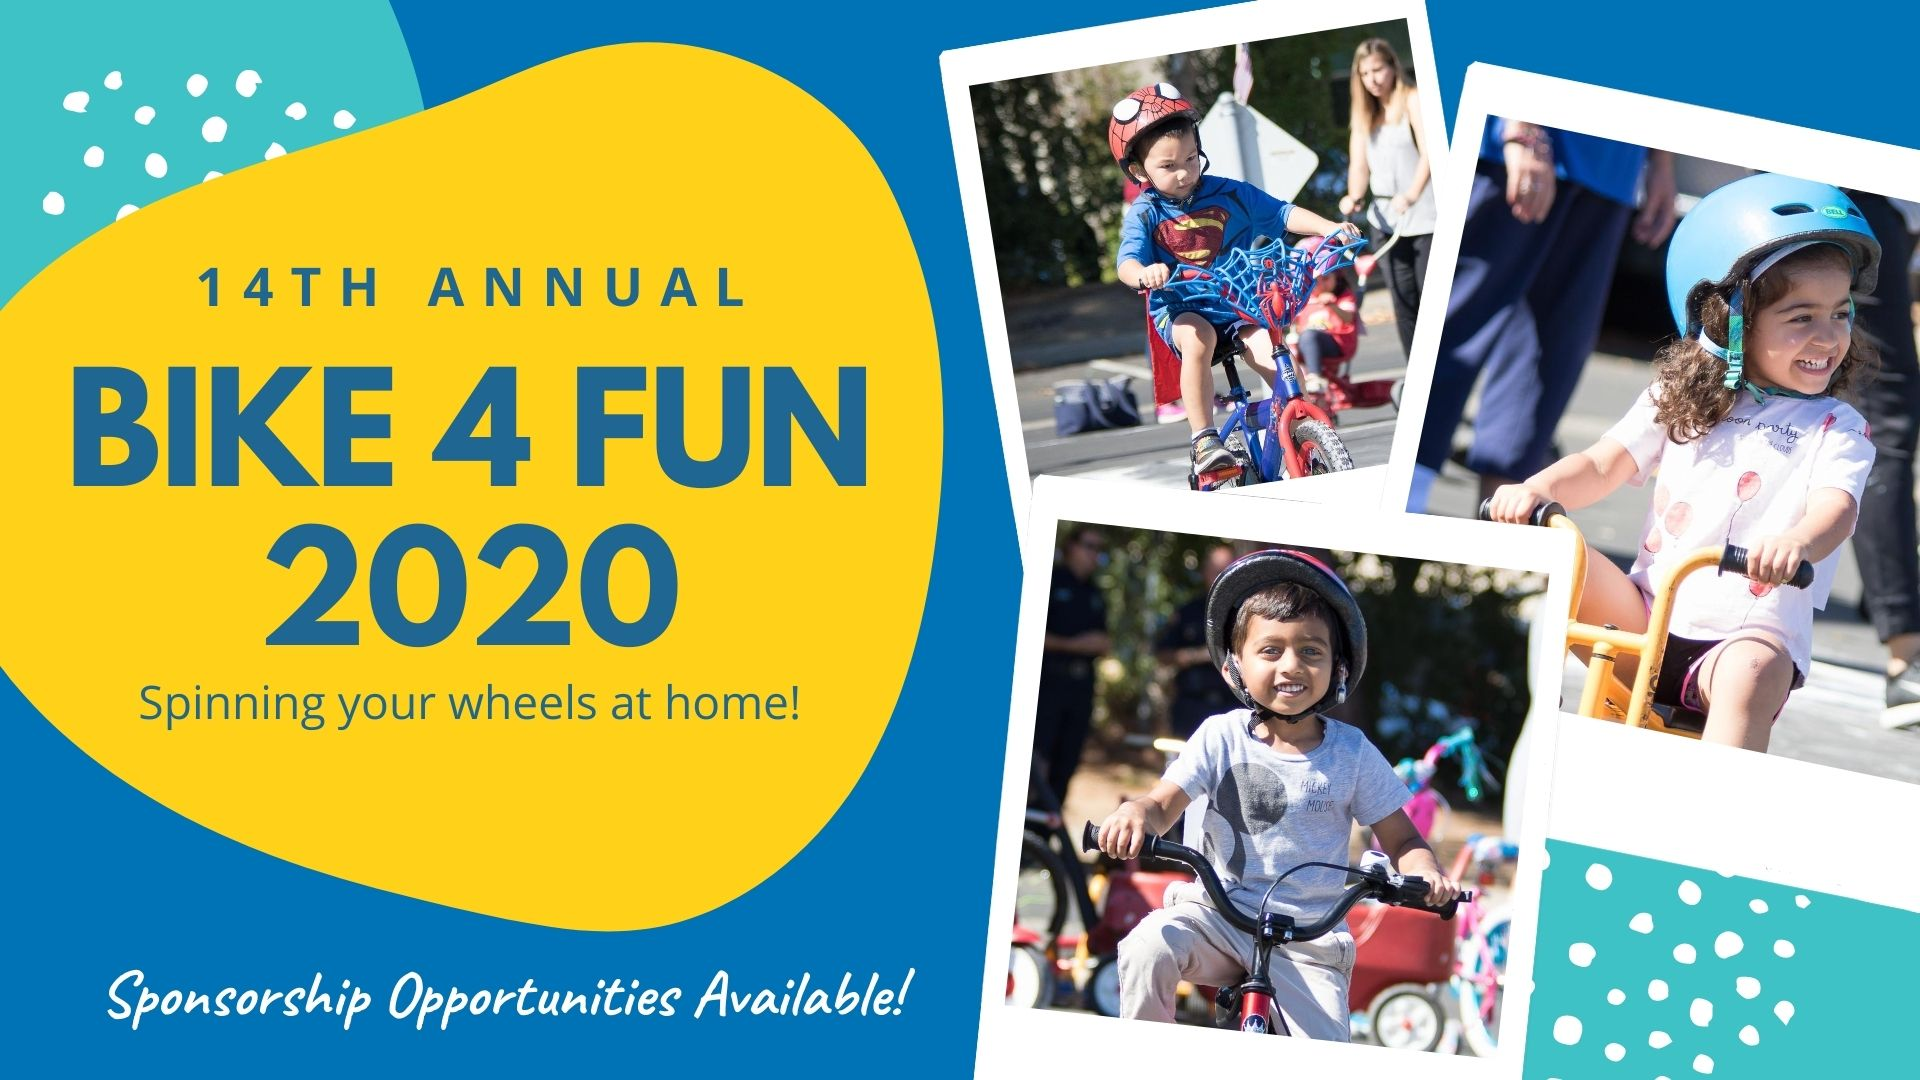 14th Annual Bike 4 Fun